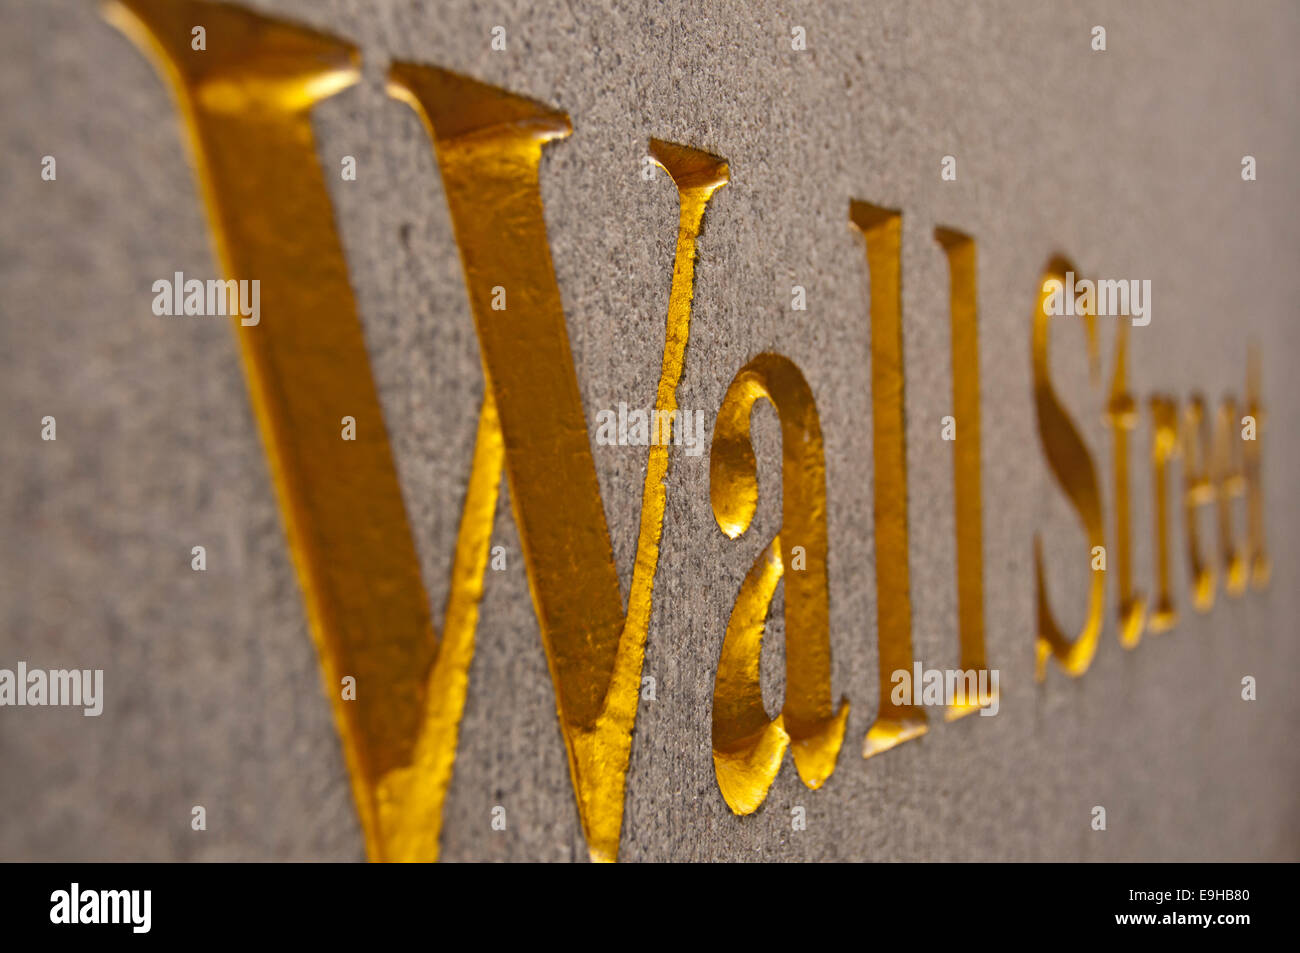 Wall Street, logo on the Bankers Trust Building, Manhattan, New York City, New York, USA - Stock Image